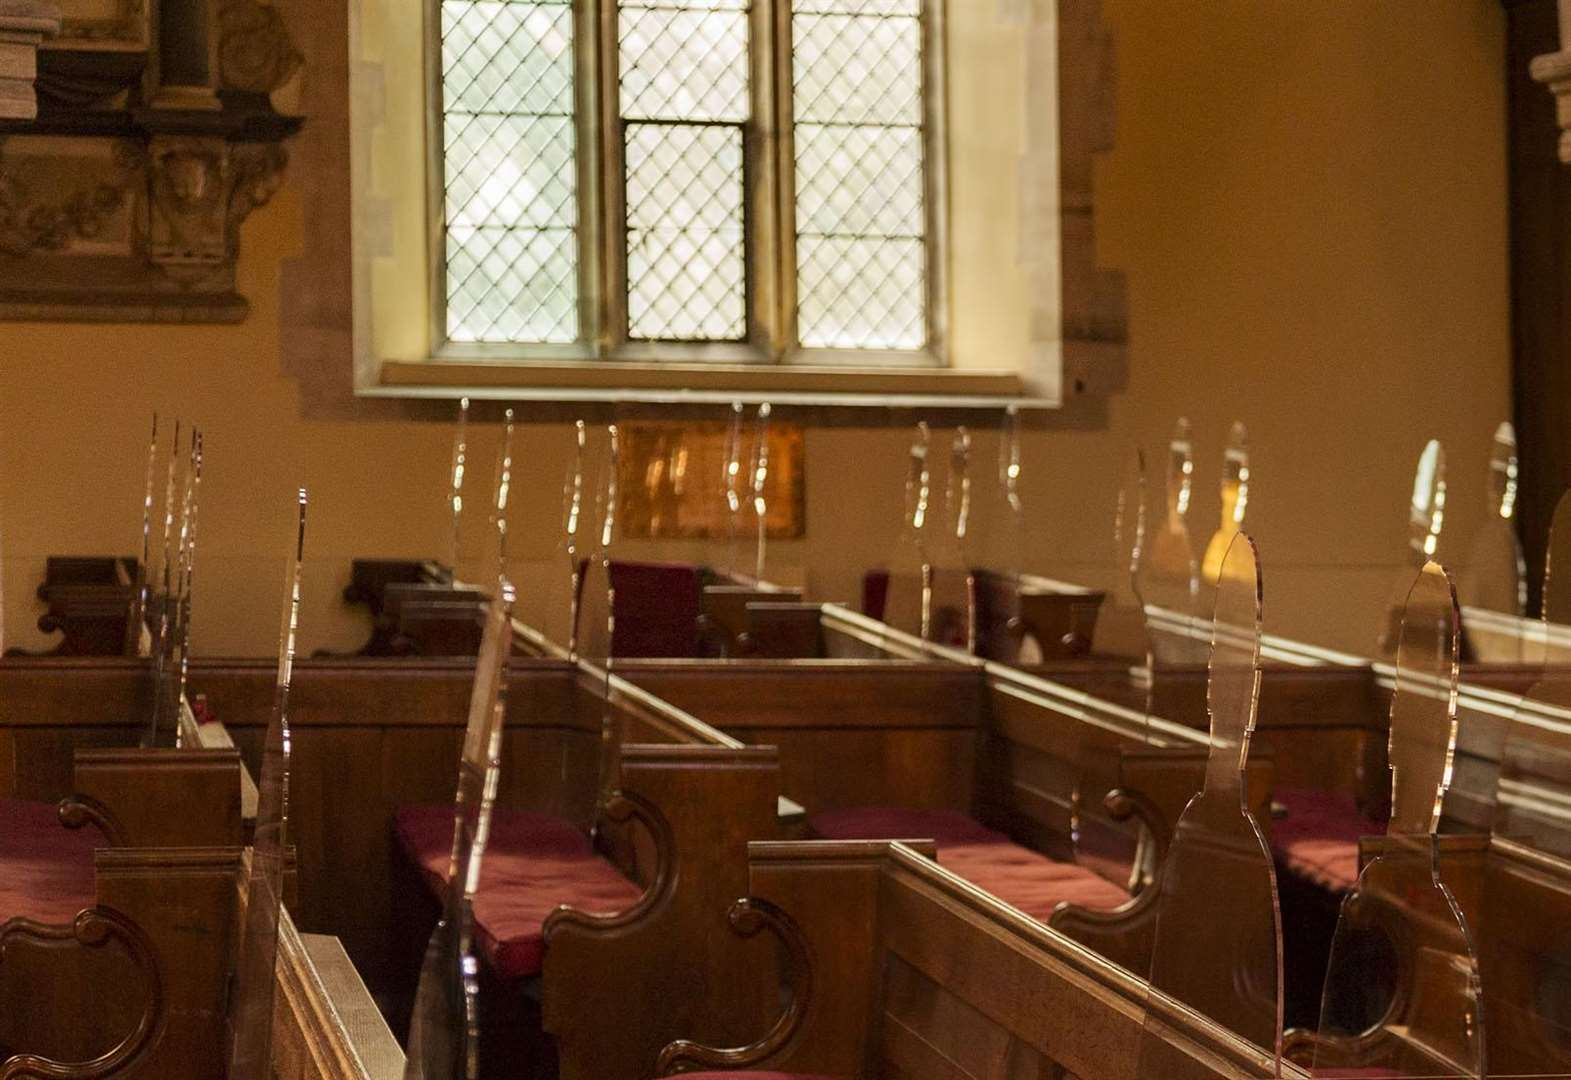 Spalding Parish Church will have Tommy silhouettes in the pews during November